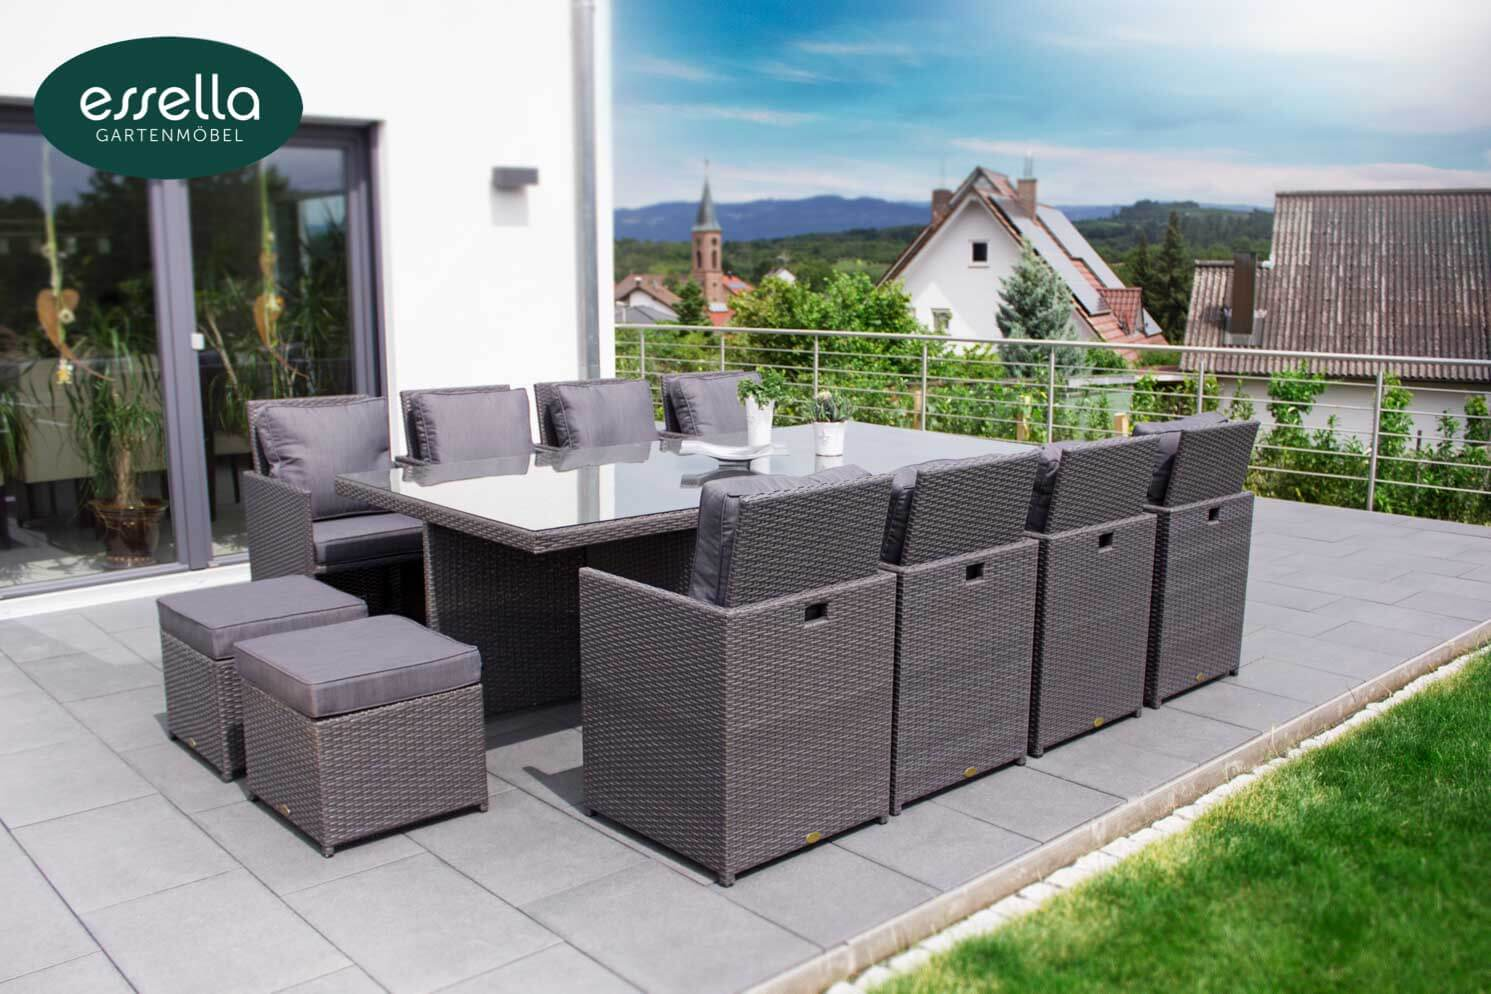 essella polyrattan sitzgruppe vienna 8 personen too design gartenm bel. Black Bedroom Furniture Sets. Home Design Ideas